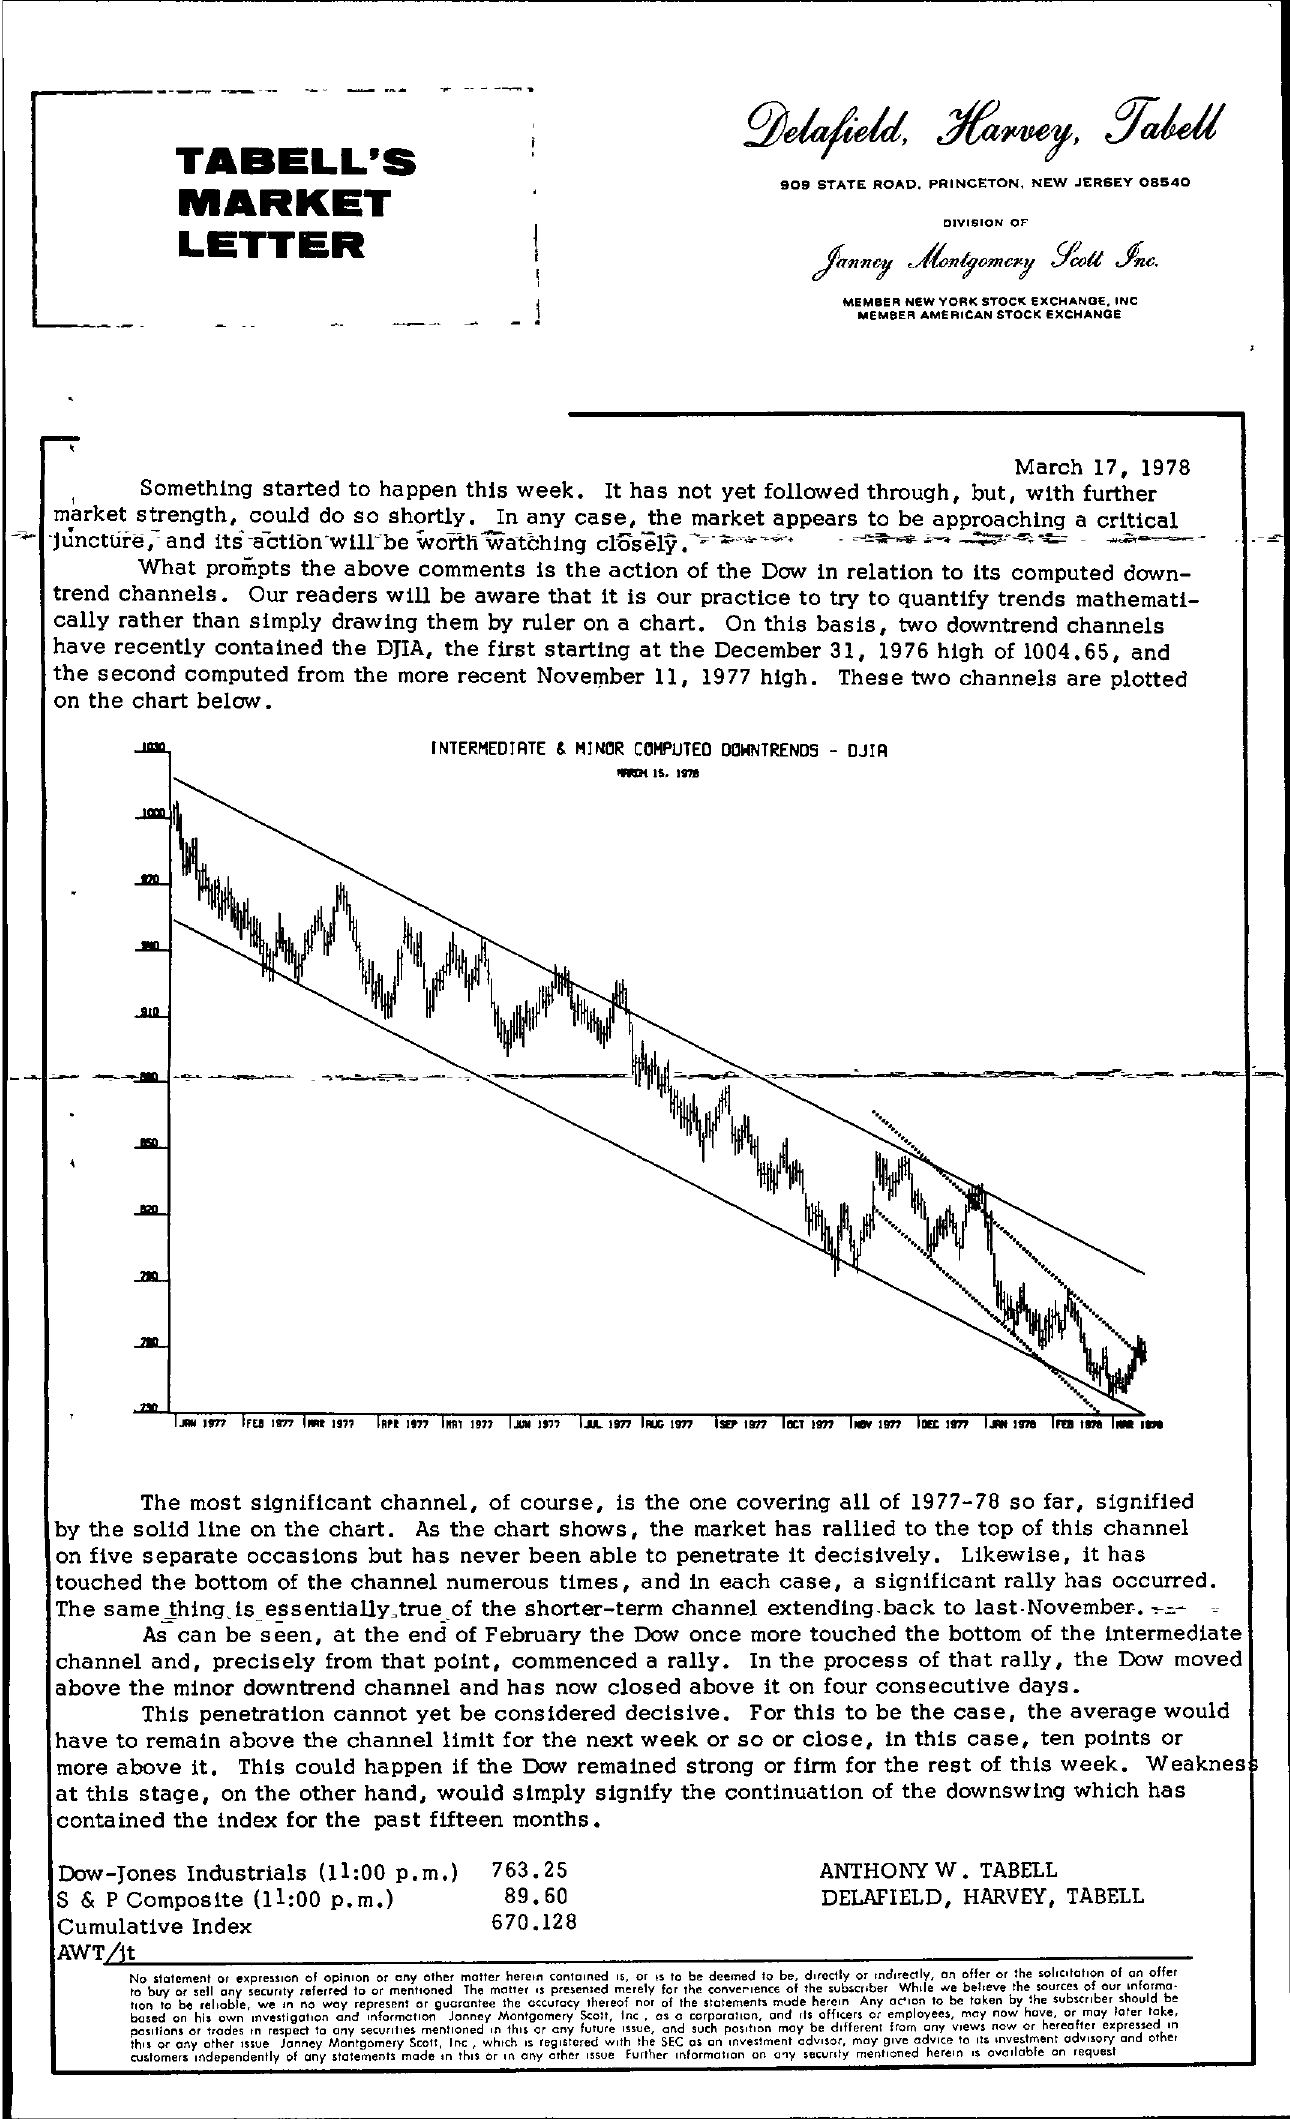 Tabell's Market Letter - March 17, 1978